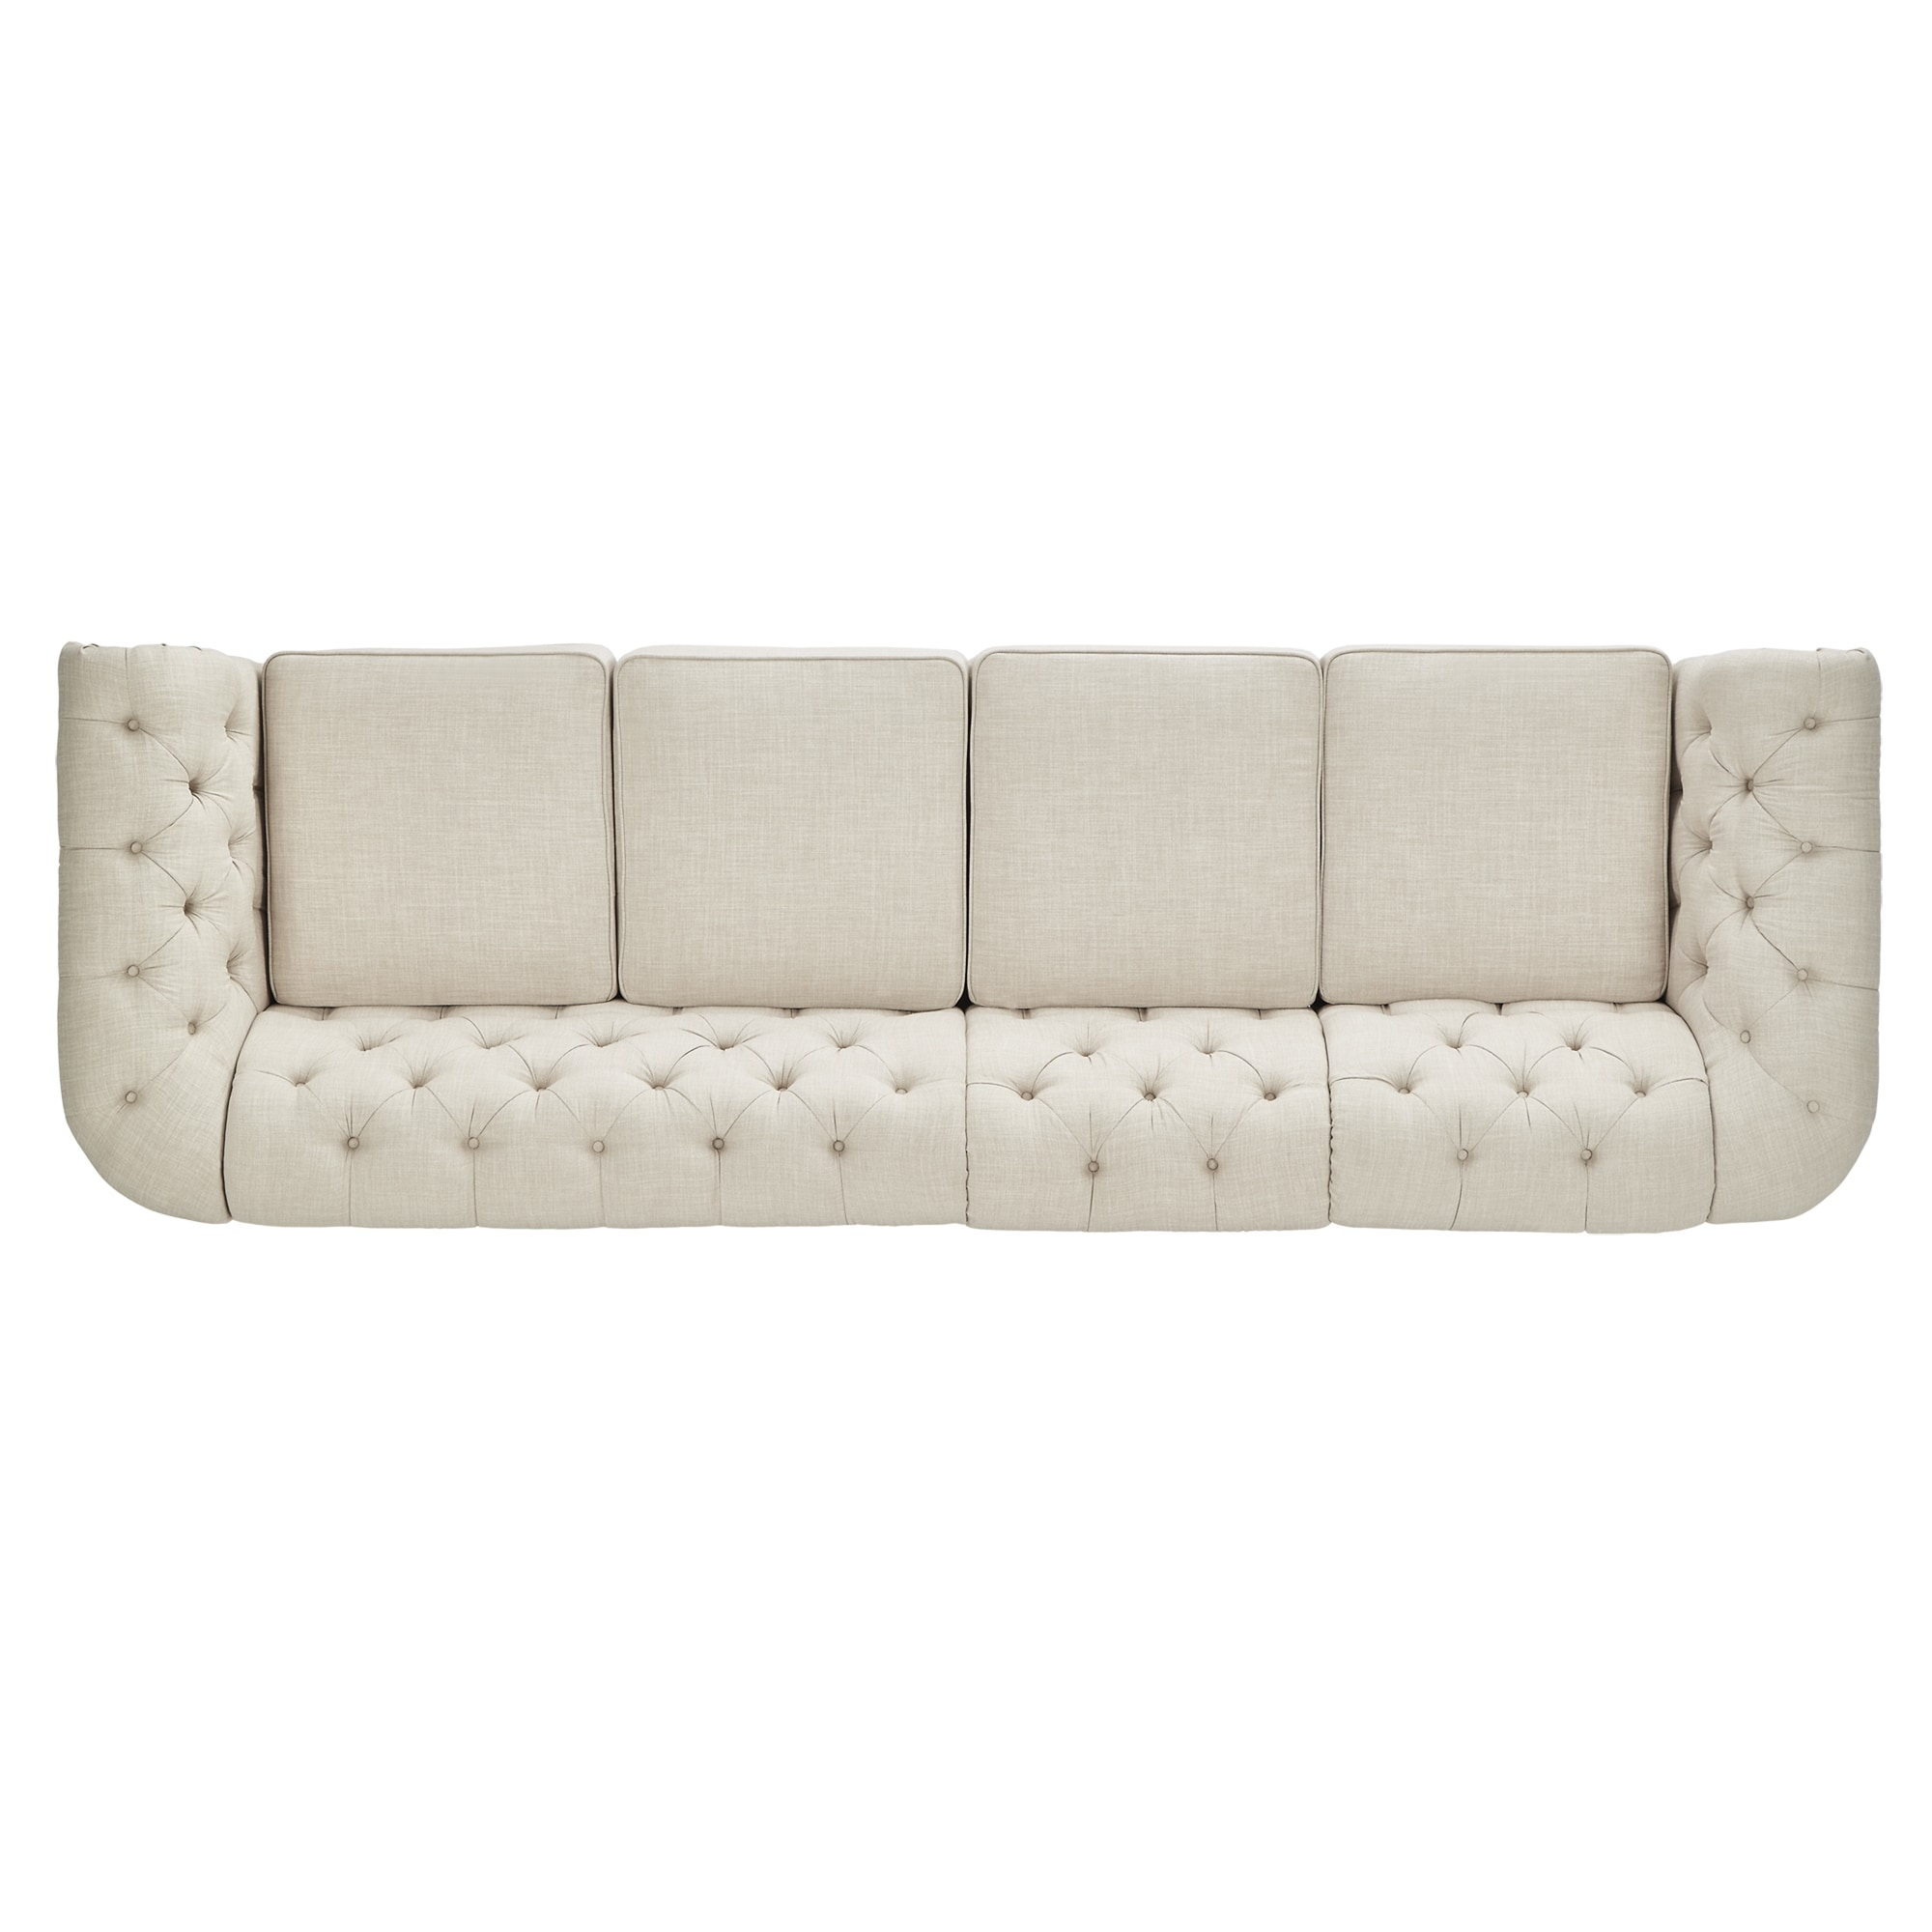 today mattress extra long product home free set size and somette multi shipping futon frame overstock garden hardwood futons flex full